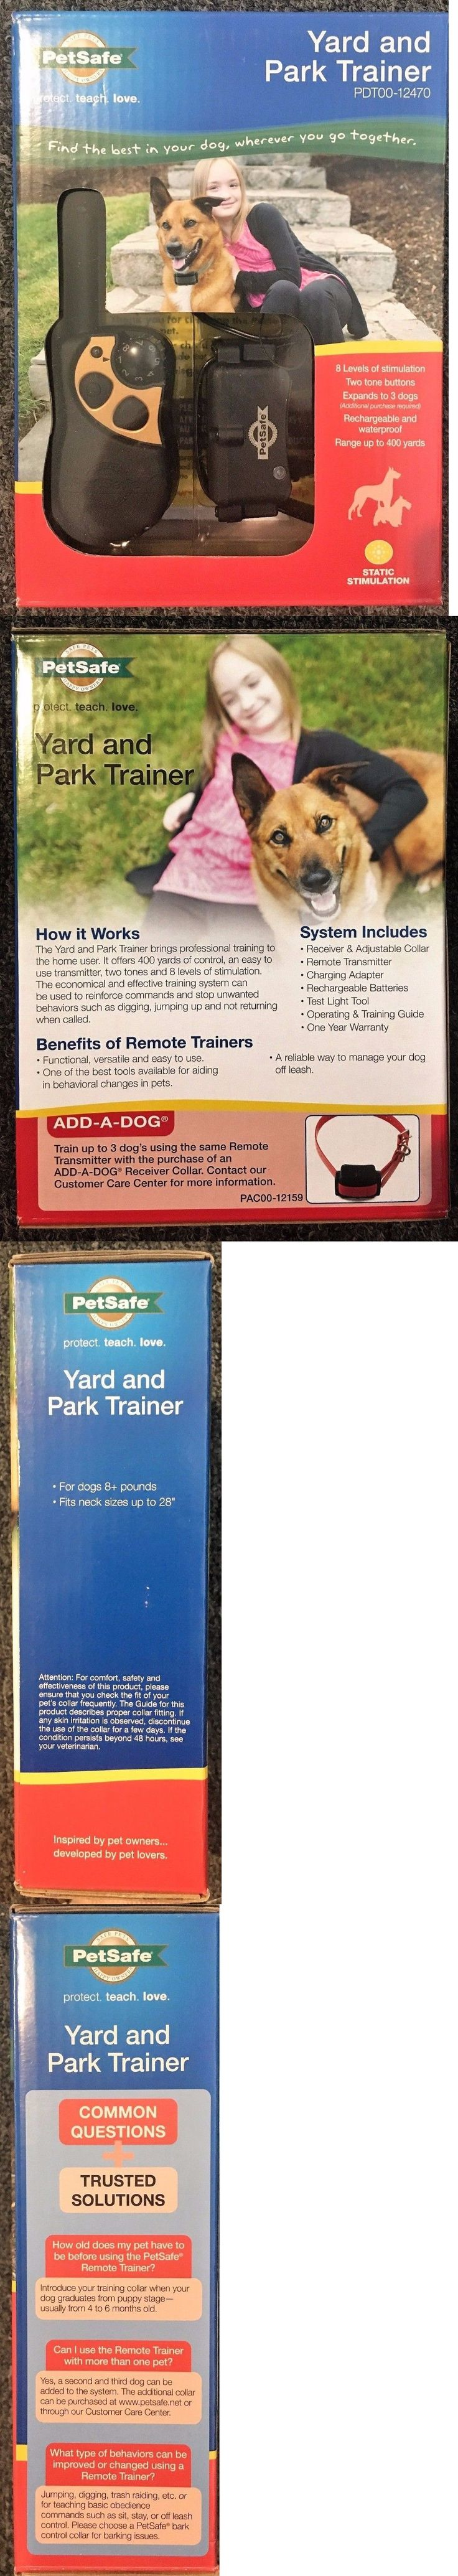 Bark Collars 66774: Petsafe Yard And Park Trainer Pdt00-12470 -> BUY IT NOW ONLY: $82.95 on eBay!